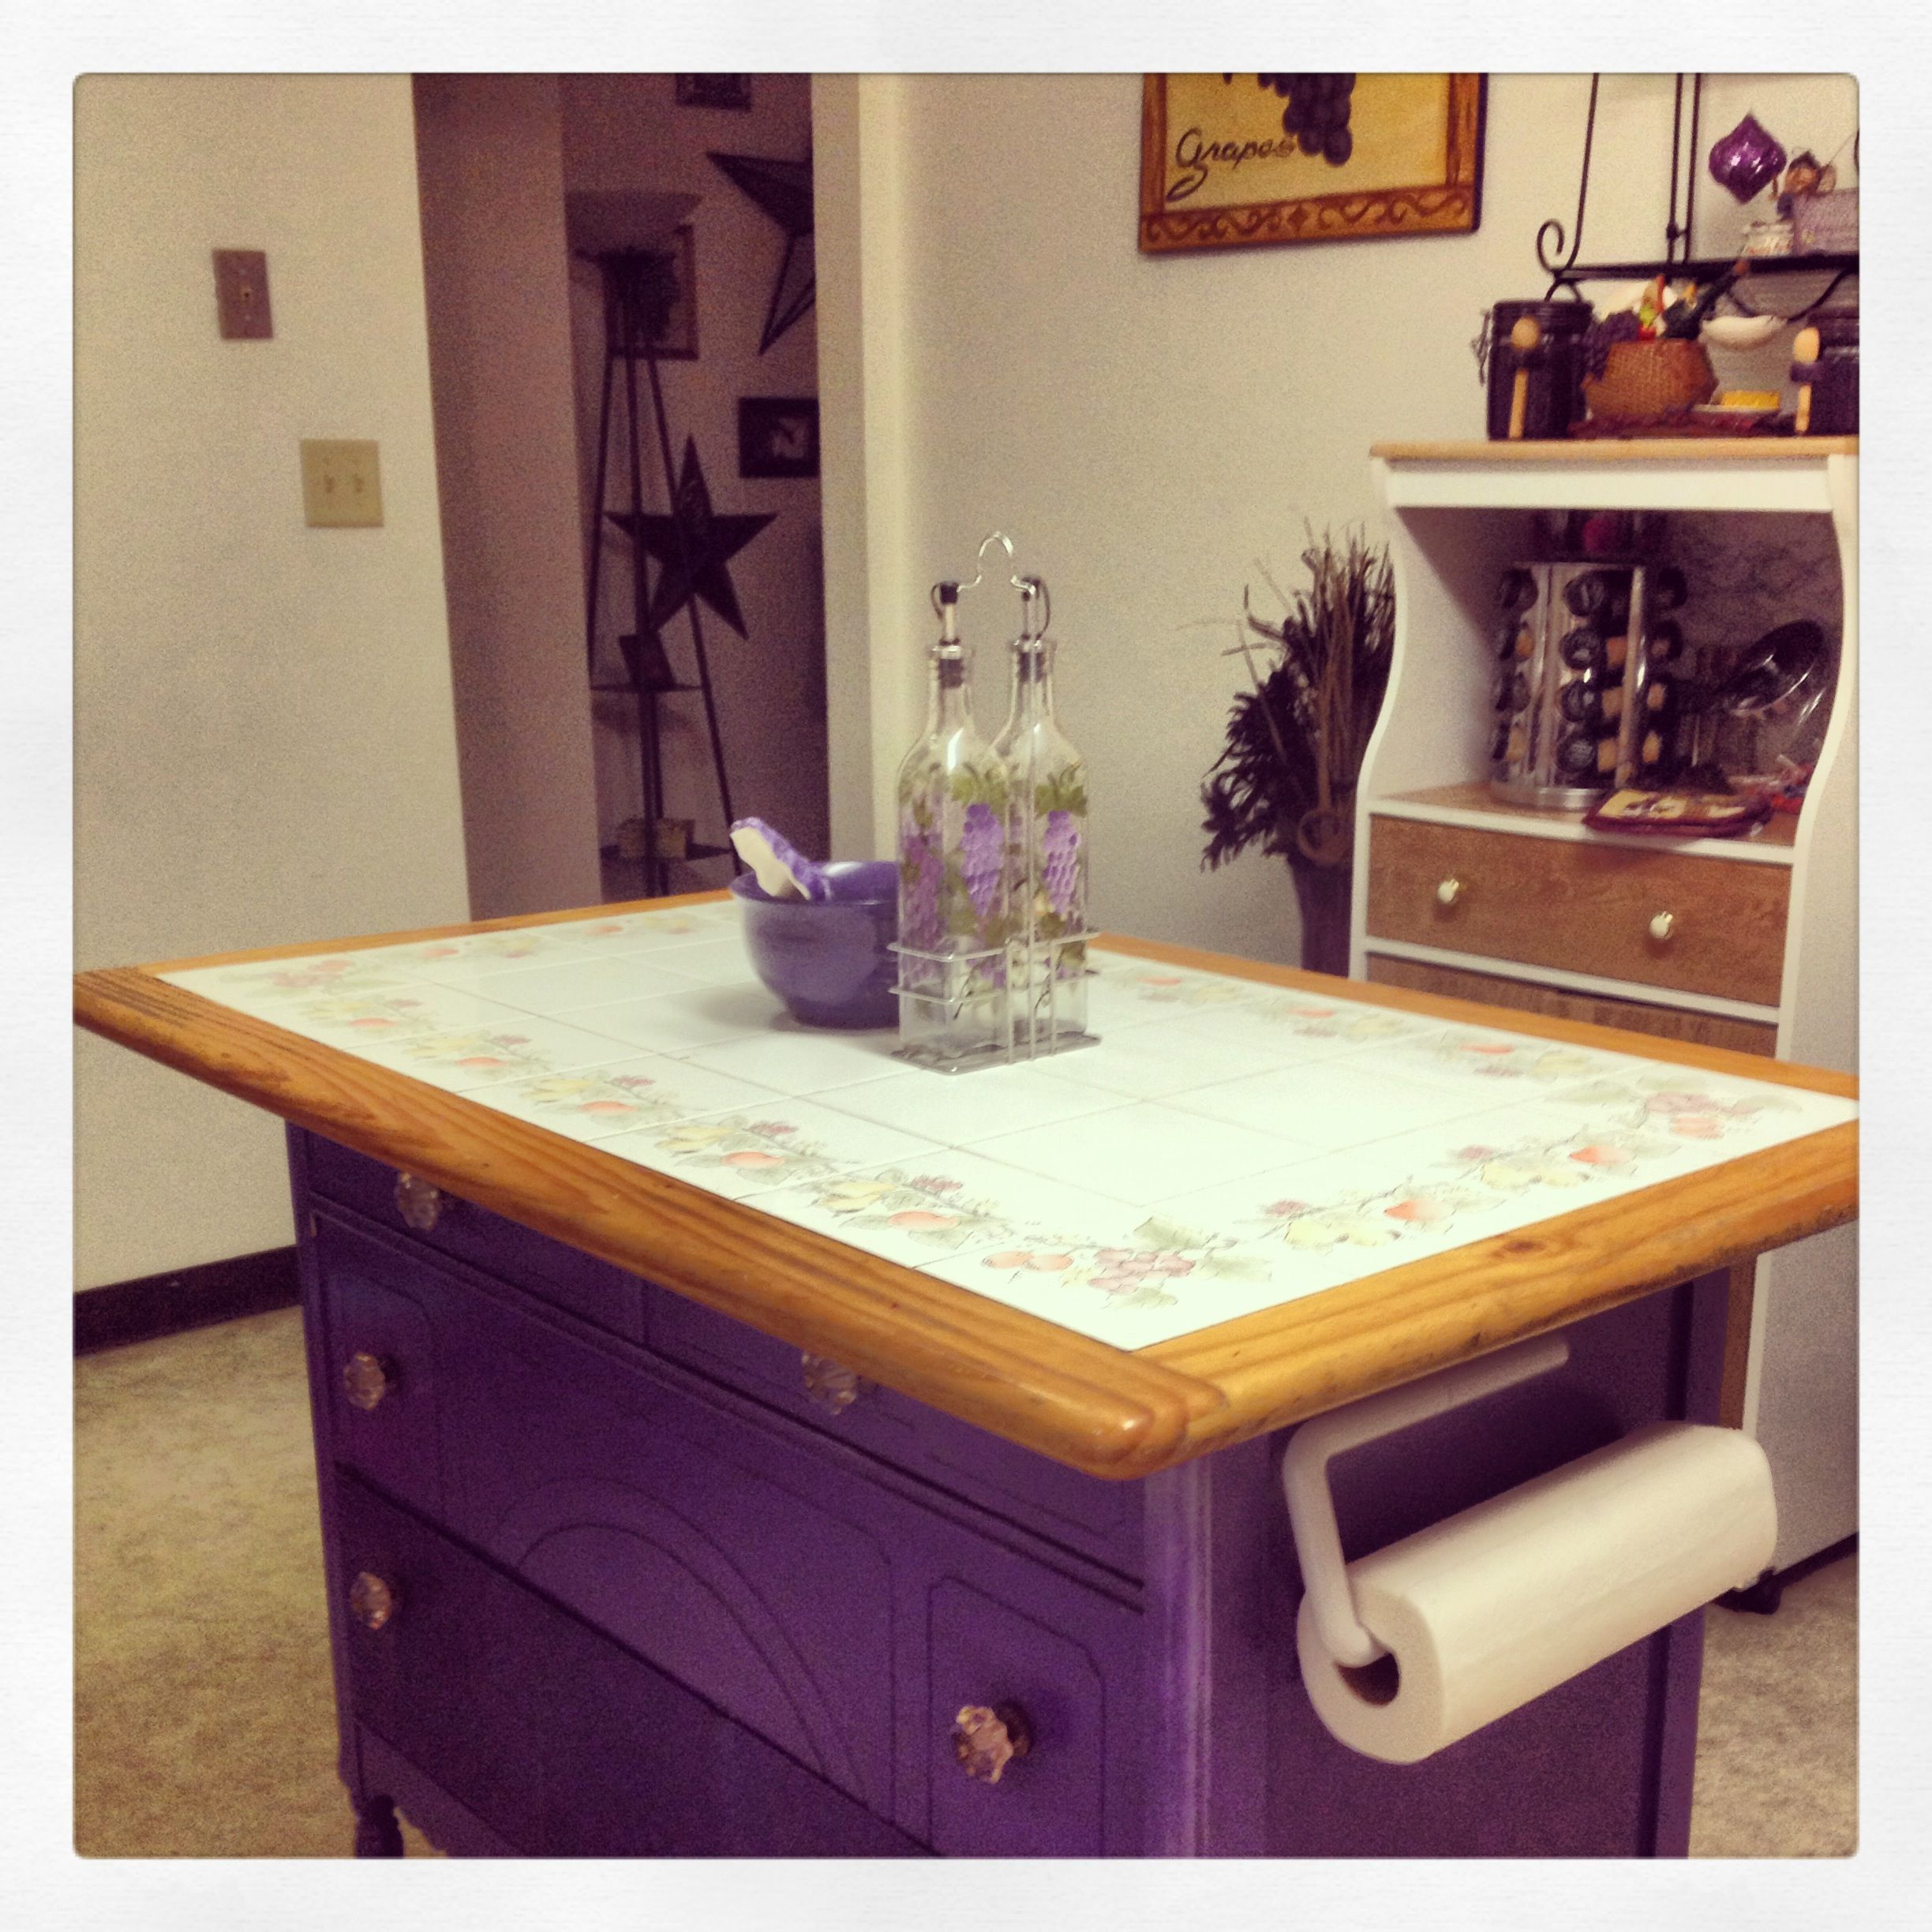 Kitchen Island Made From Old Desk: Old Kitchen Table And An Old Dresser Made Into A Kitchen